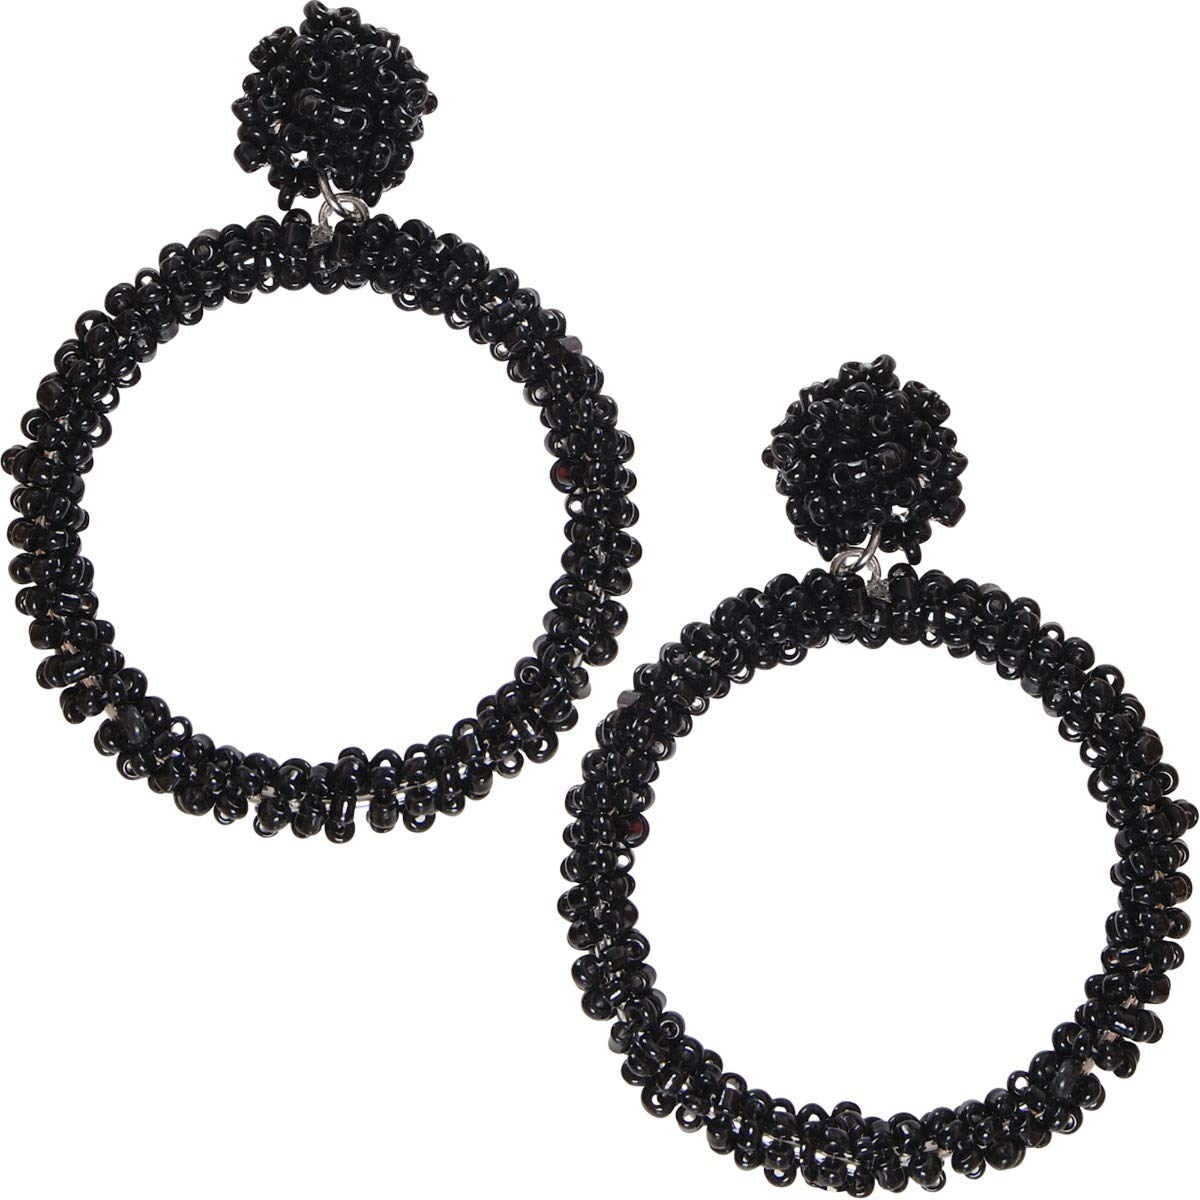 4e27876a14bf9 Humble Chic Beaded Hoop Earrings for Women - Statement Big Hoops Bohemian  Circle Round Drop Dangles